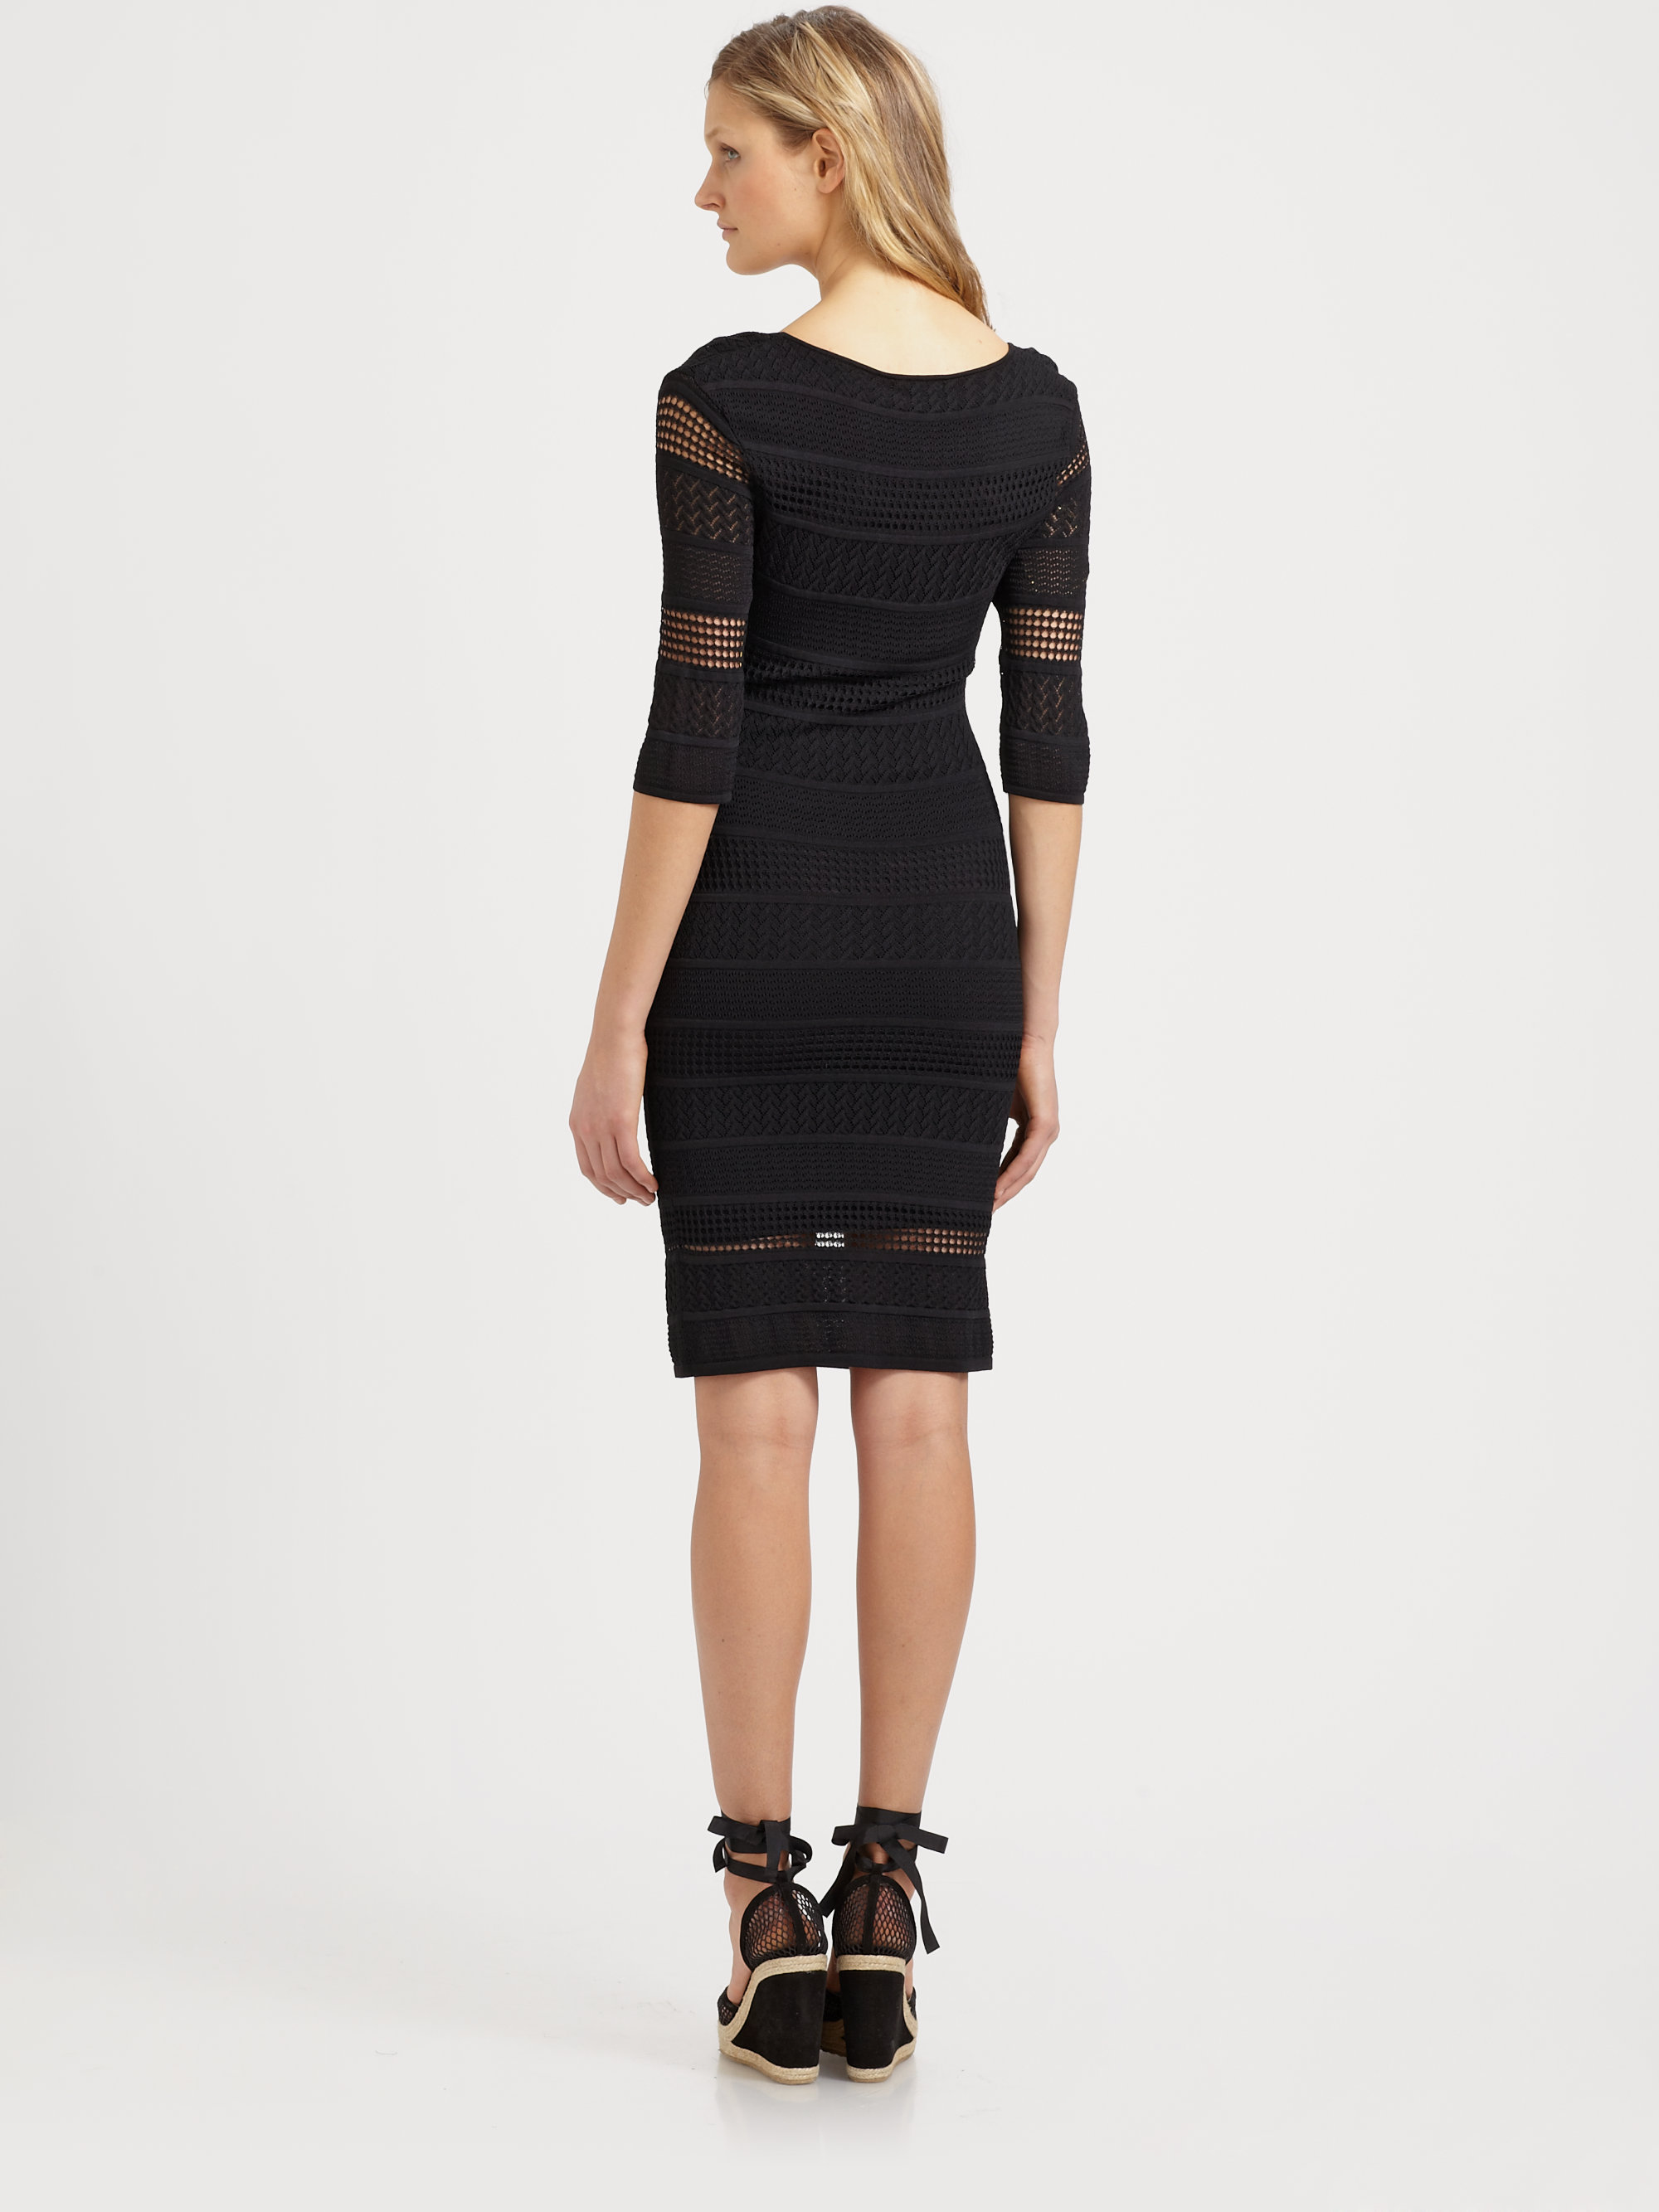 Lyst - Catherine Malandrino Pointelle Knit Dress in Black cd4db2327e7